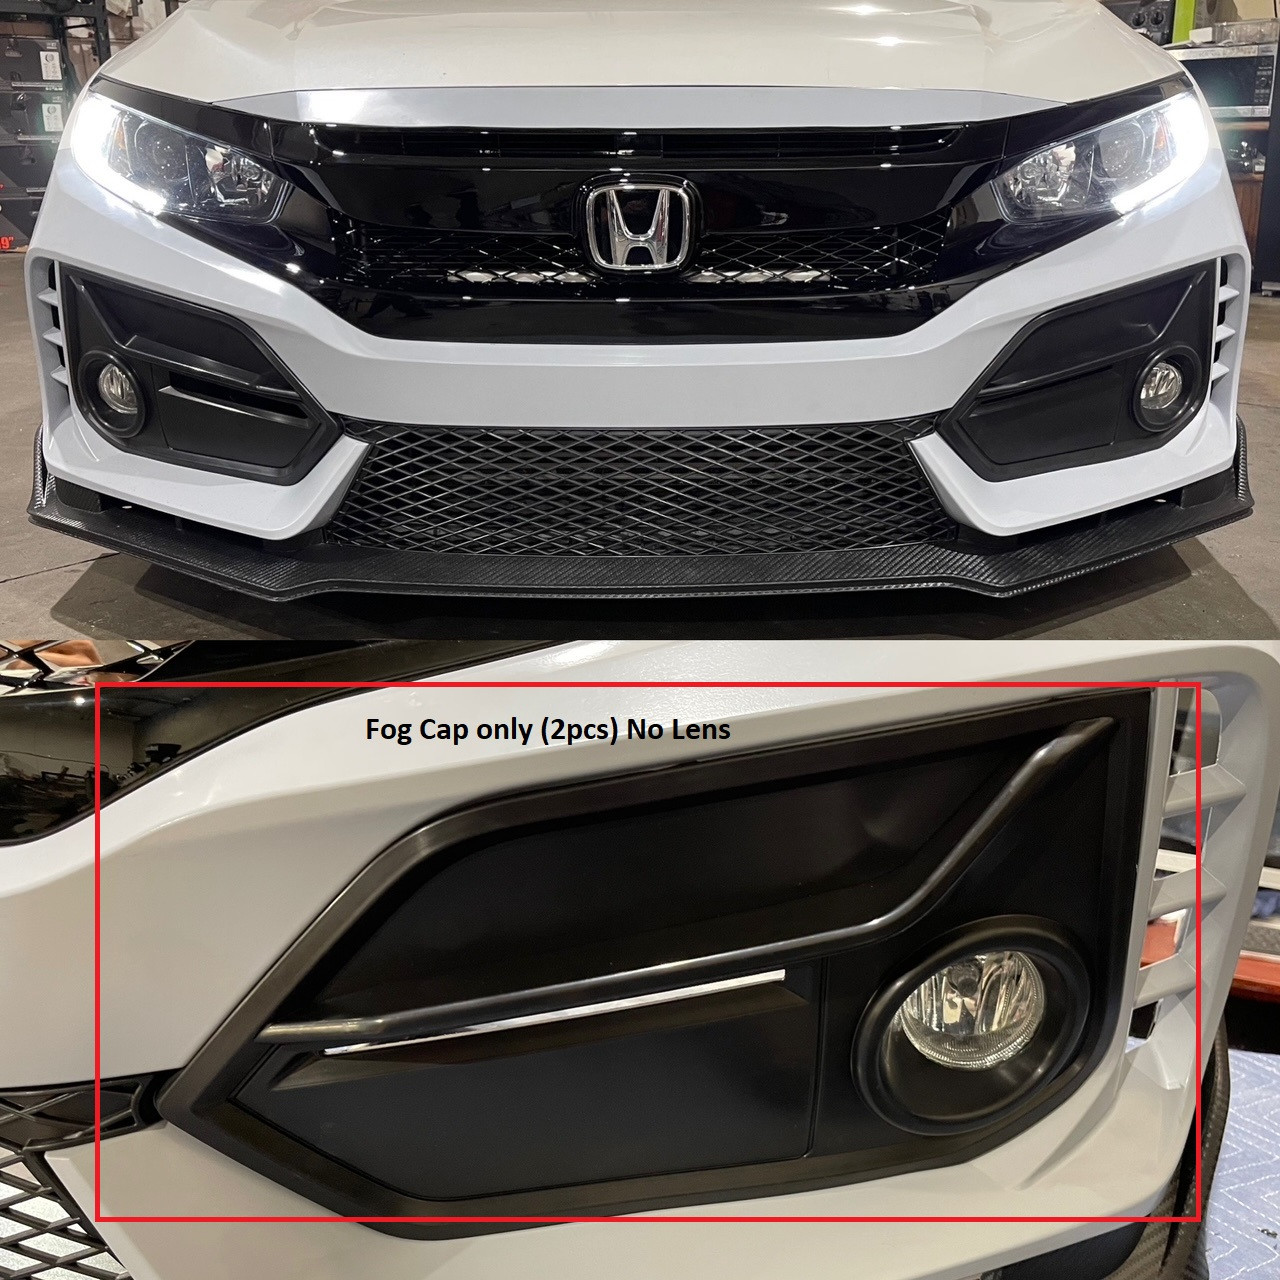 """16-2021 Honda Civic Type R Style Front Bumper """"Fog Caps only"""" for Better Fitment Bumper only"""